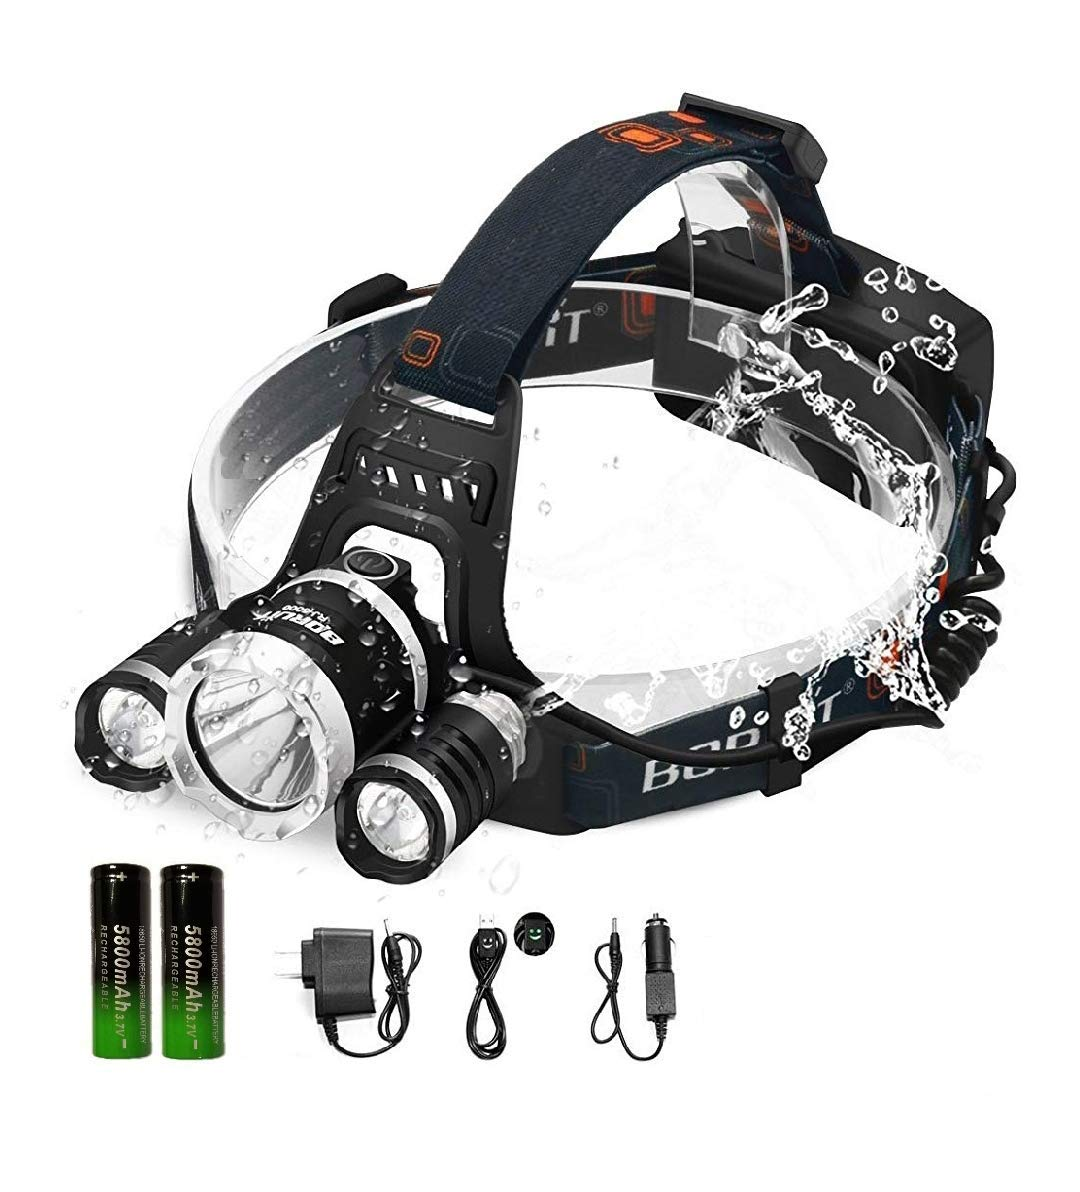 SUMO LED Head Lamp Brightest Head Lamp Equipped 6000 Lumens 3 Original Cree Led. Rechargeable Batteries Included, Headlamps Outdoor & Indoor.